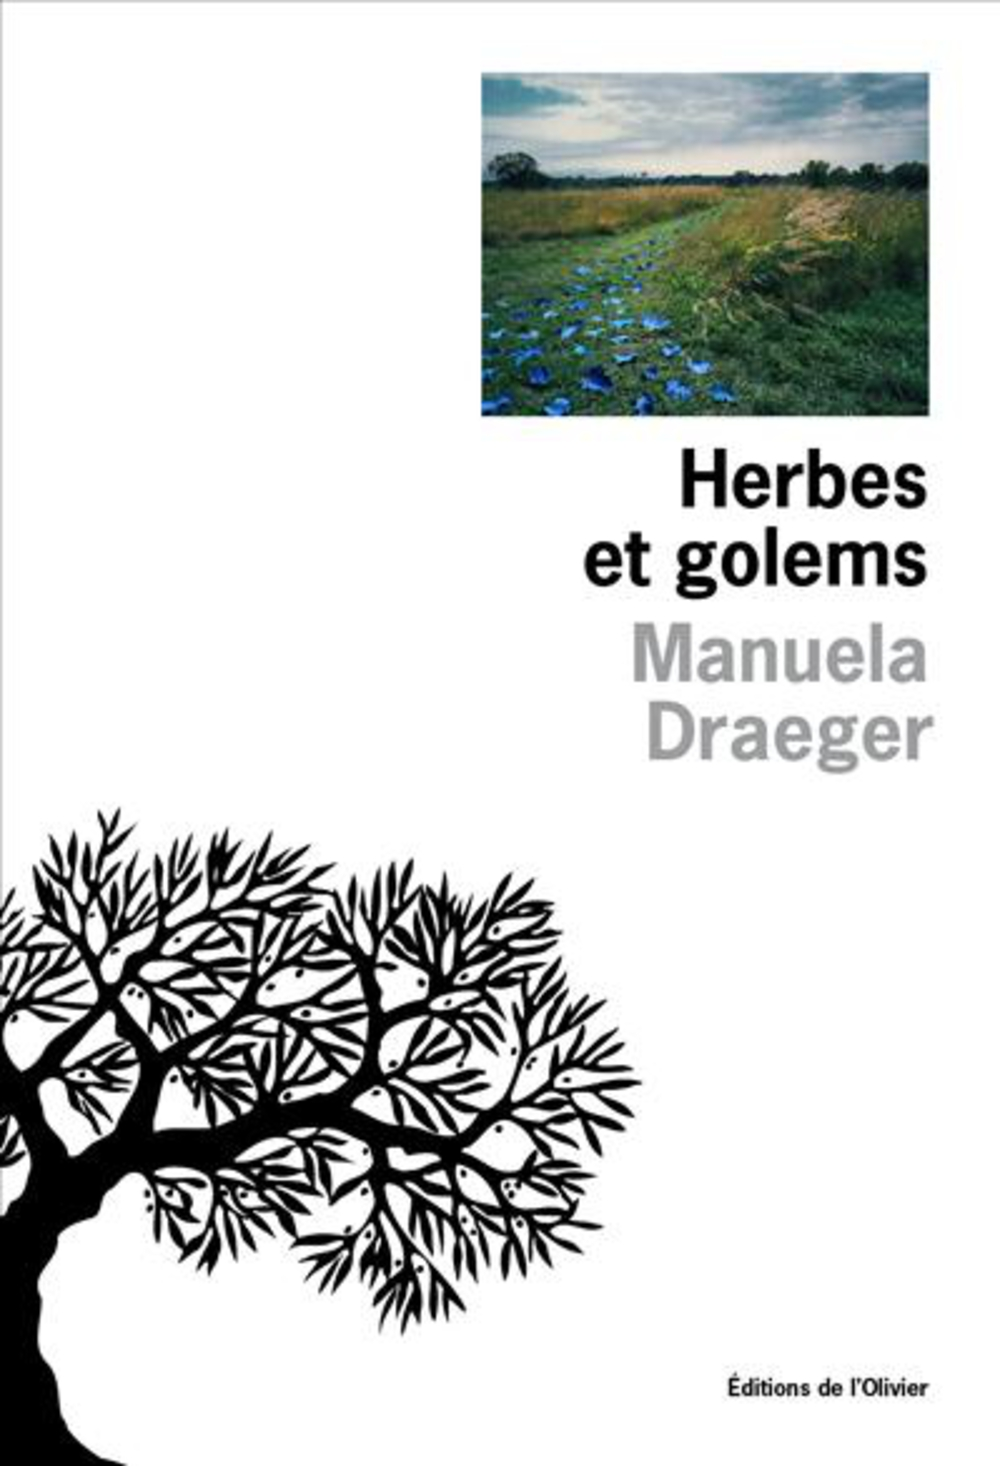 http://hermitecritique.files.wordpress.com/2012/08/herbes-et-golems-manuela-draeger.png